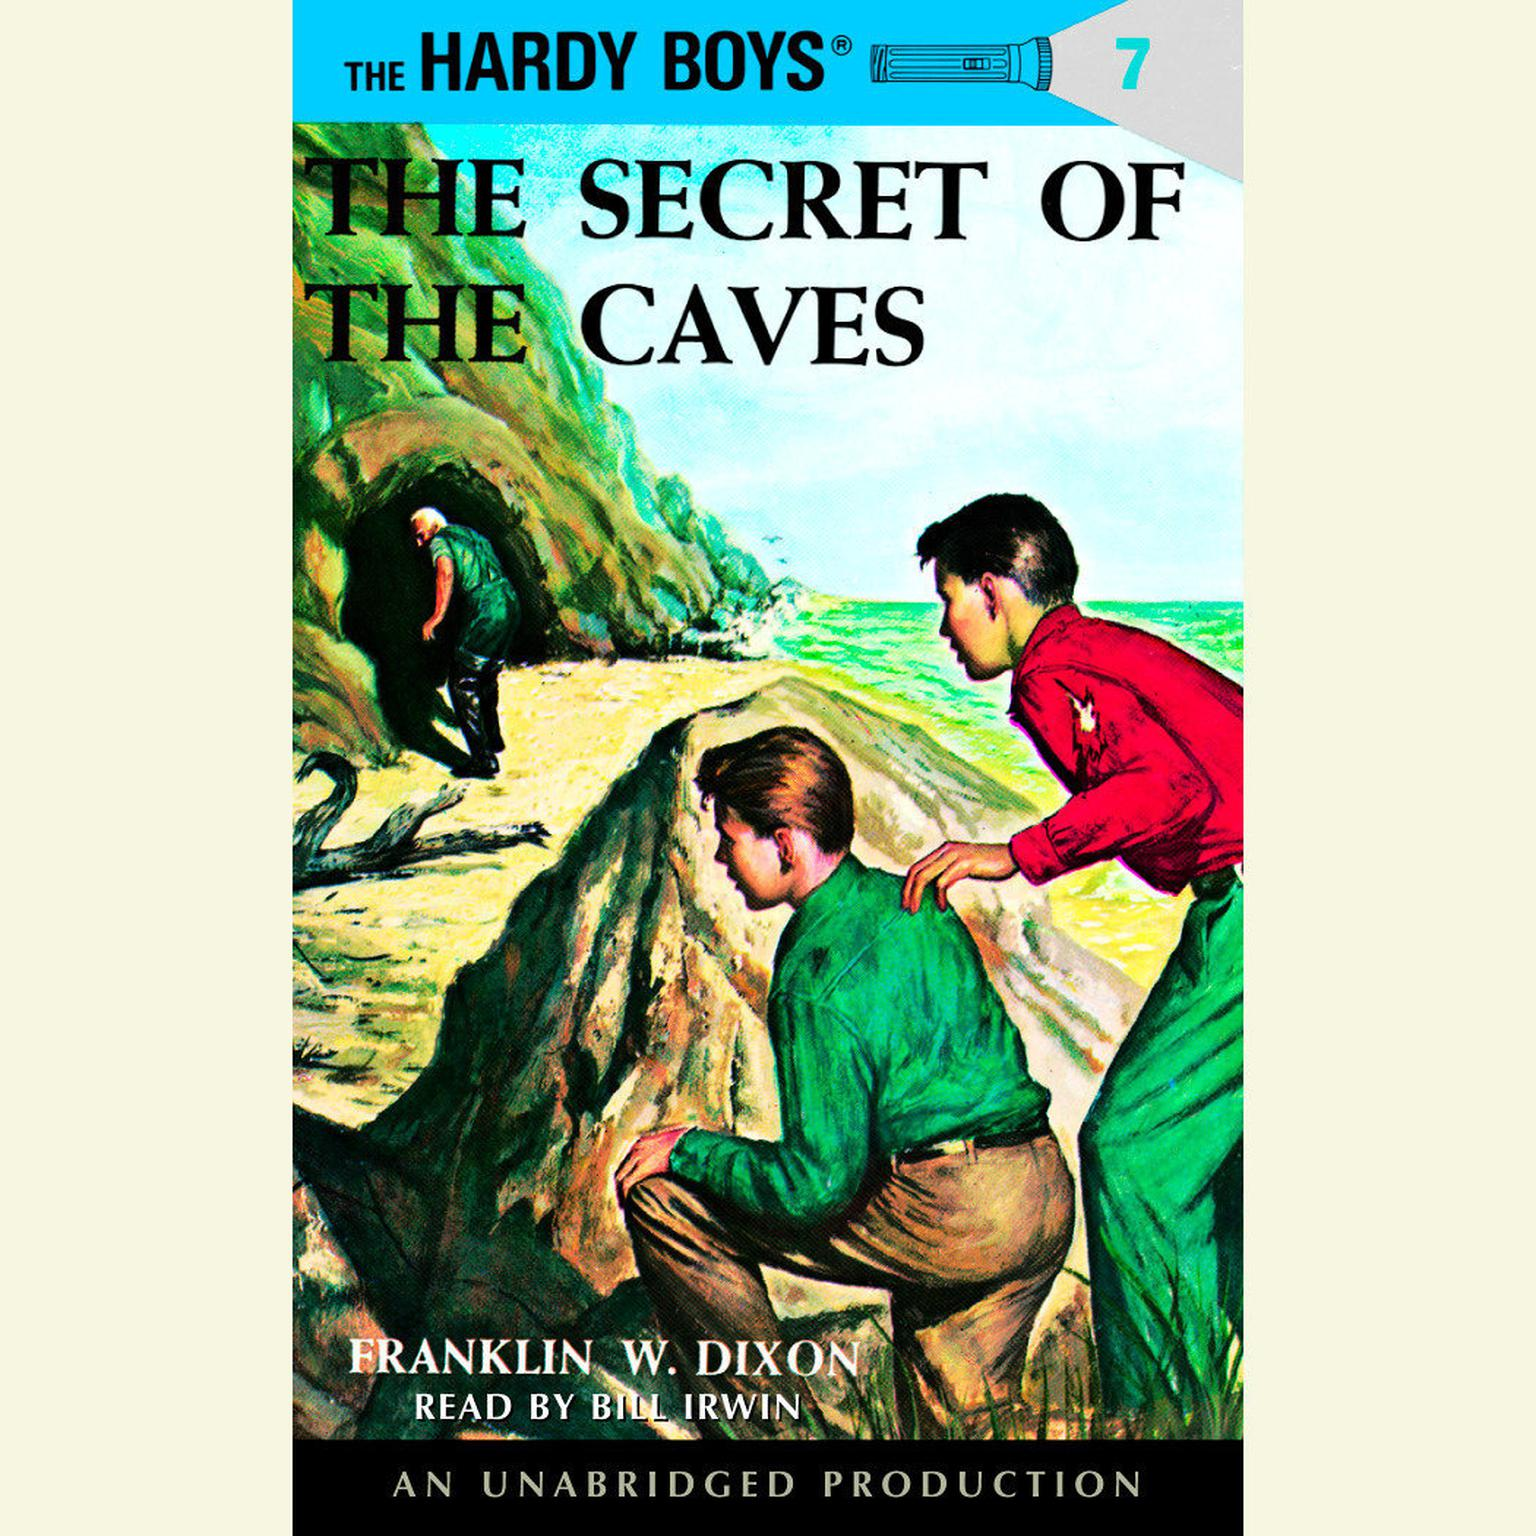 The Hardy Boys #7: The Secret of the Caves Audiobook, by Franklin W. Dixon